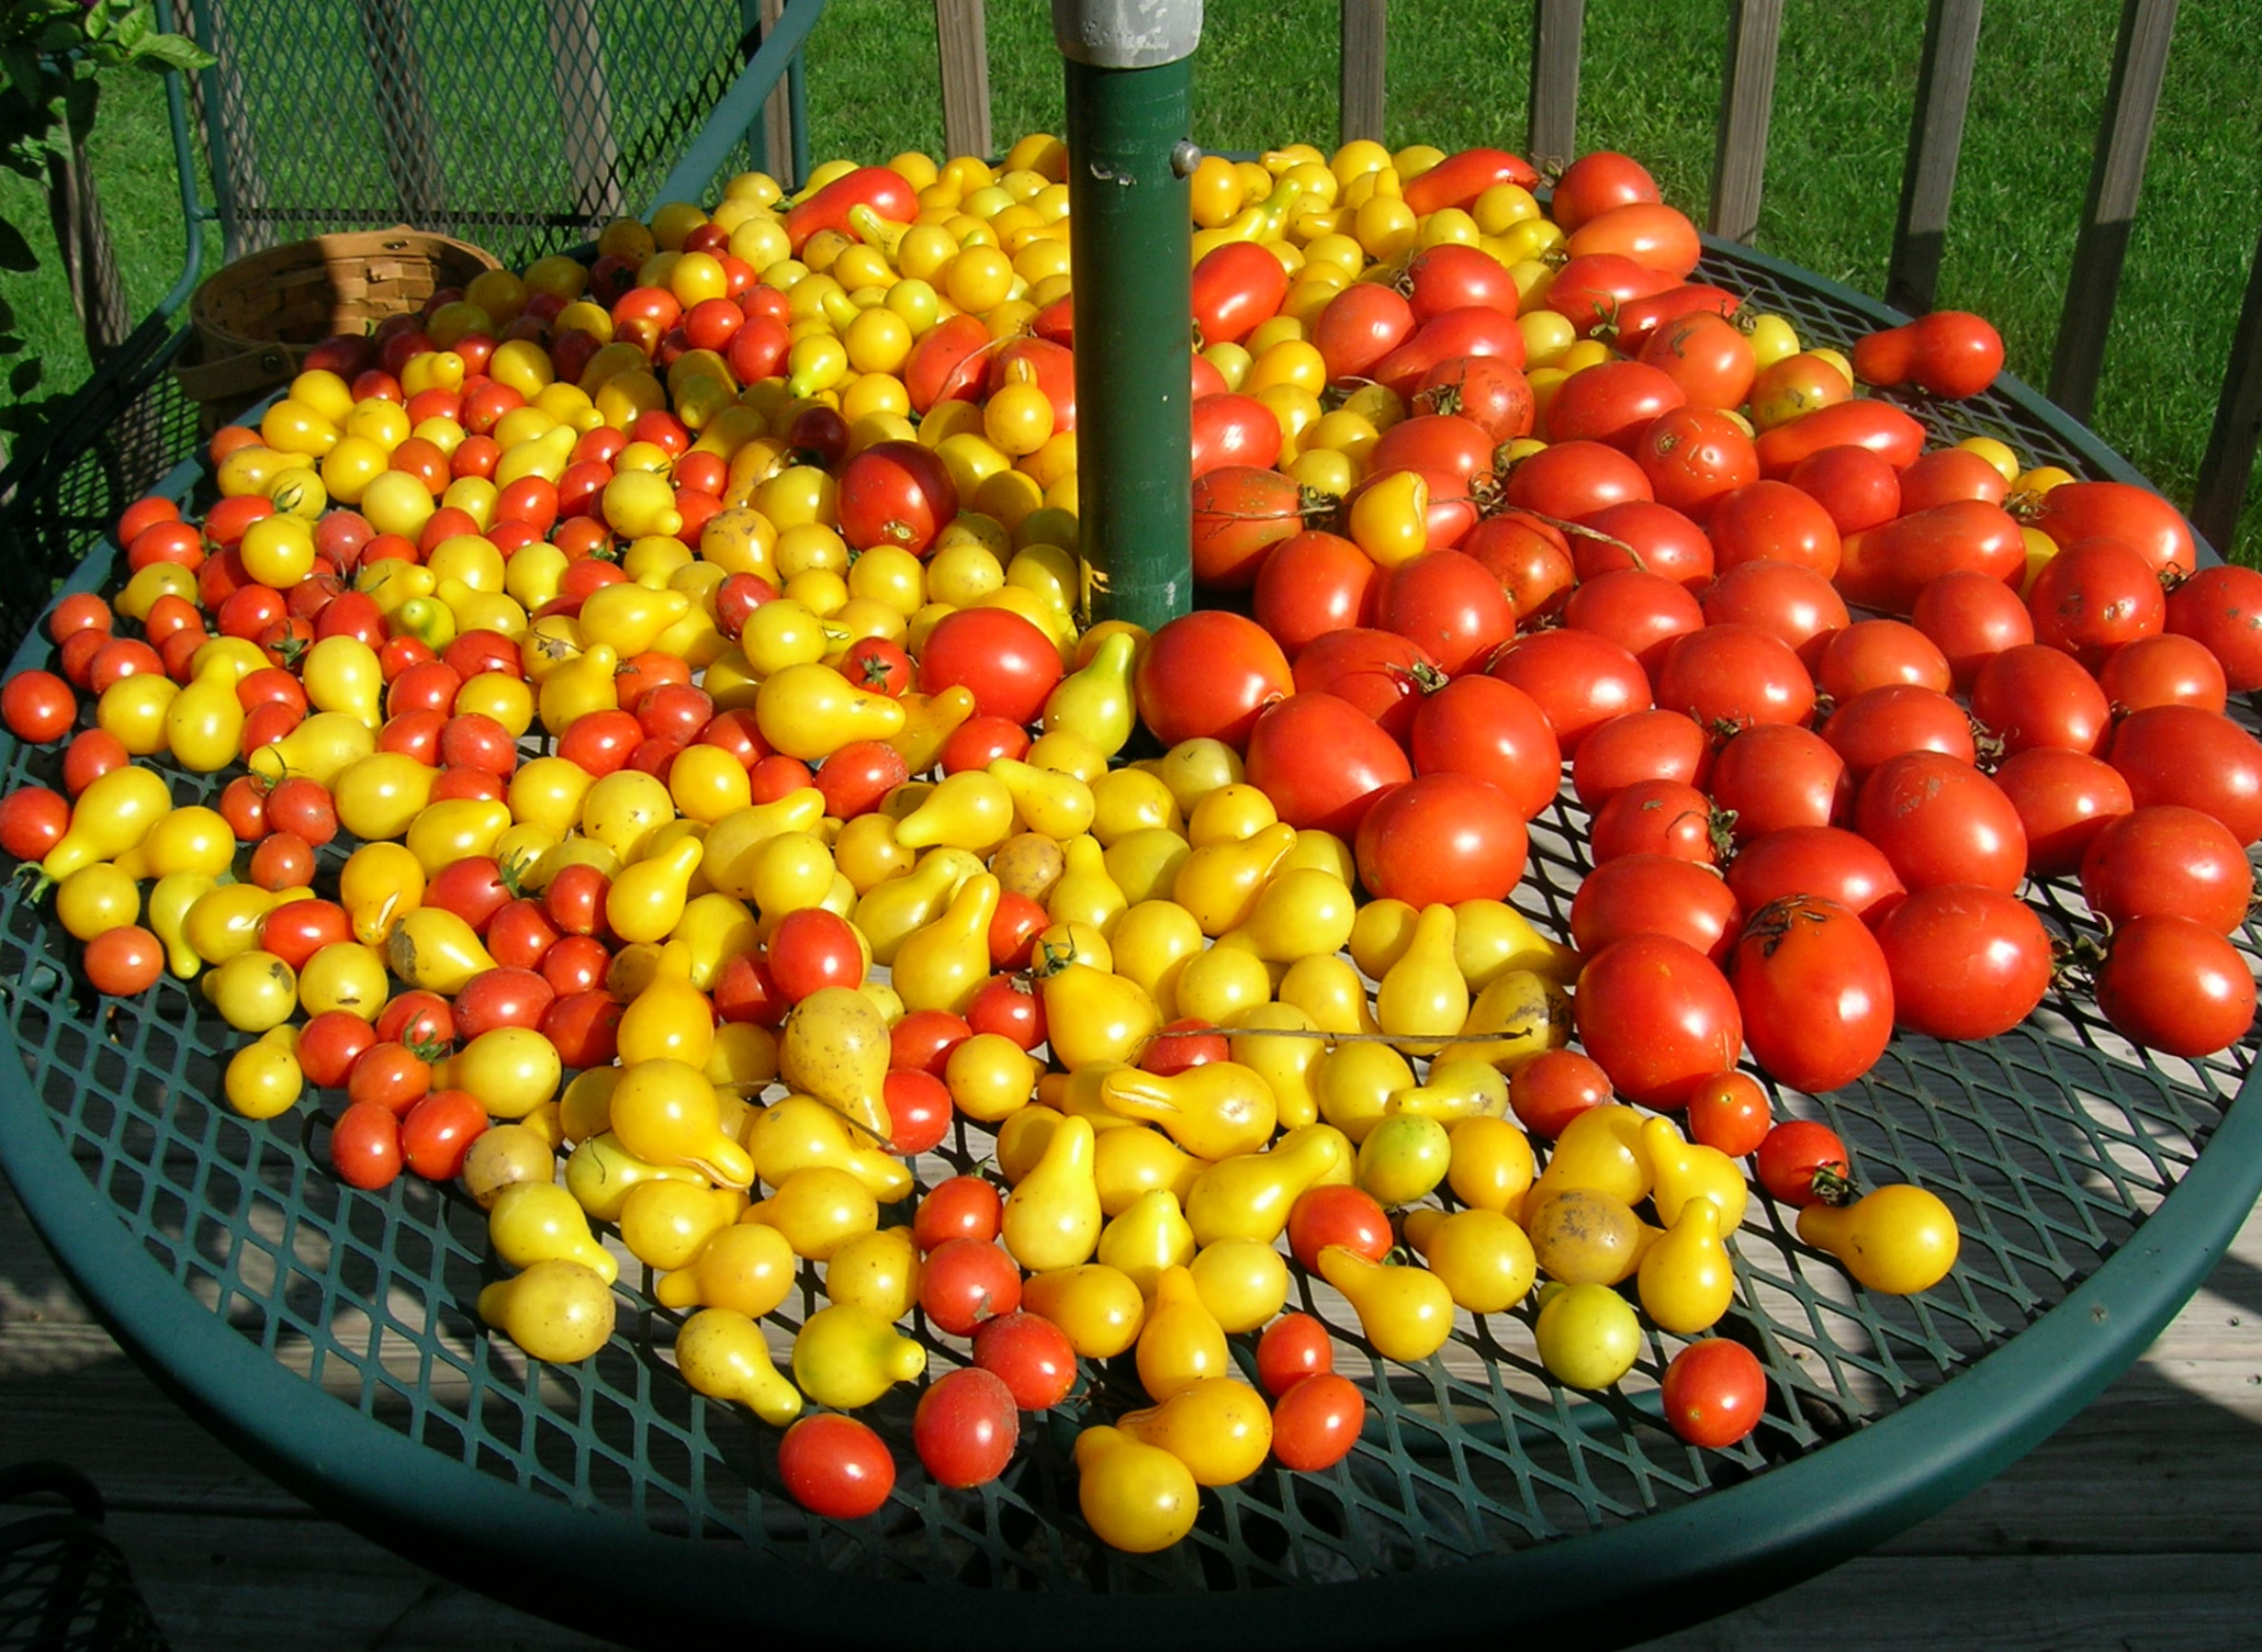 gardening-autumn-harvest-produce-tomatoes.jpg